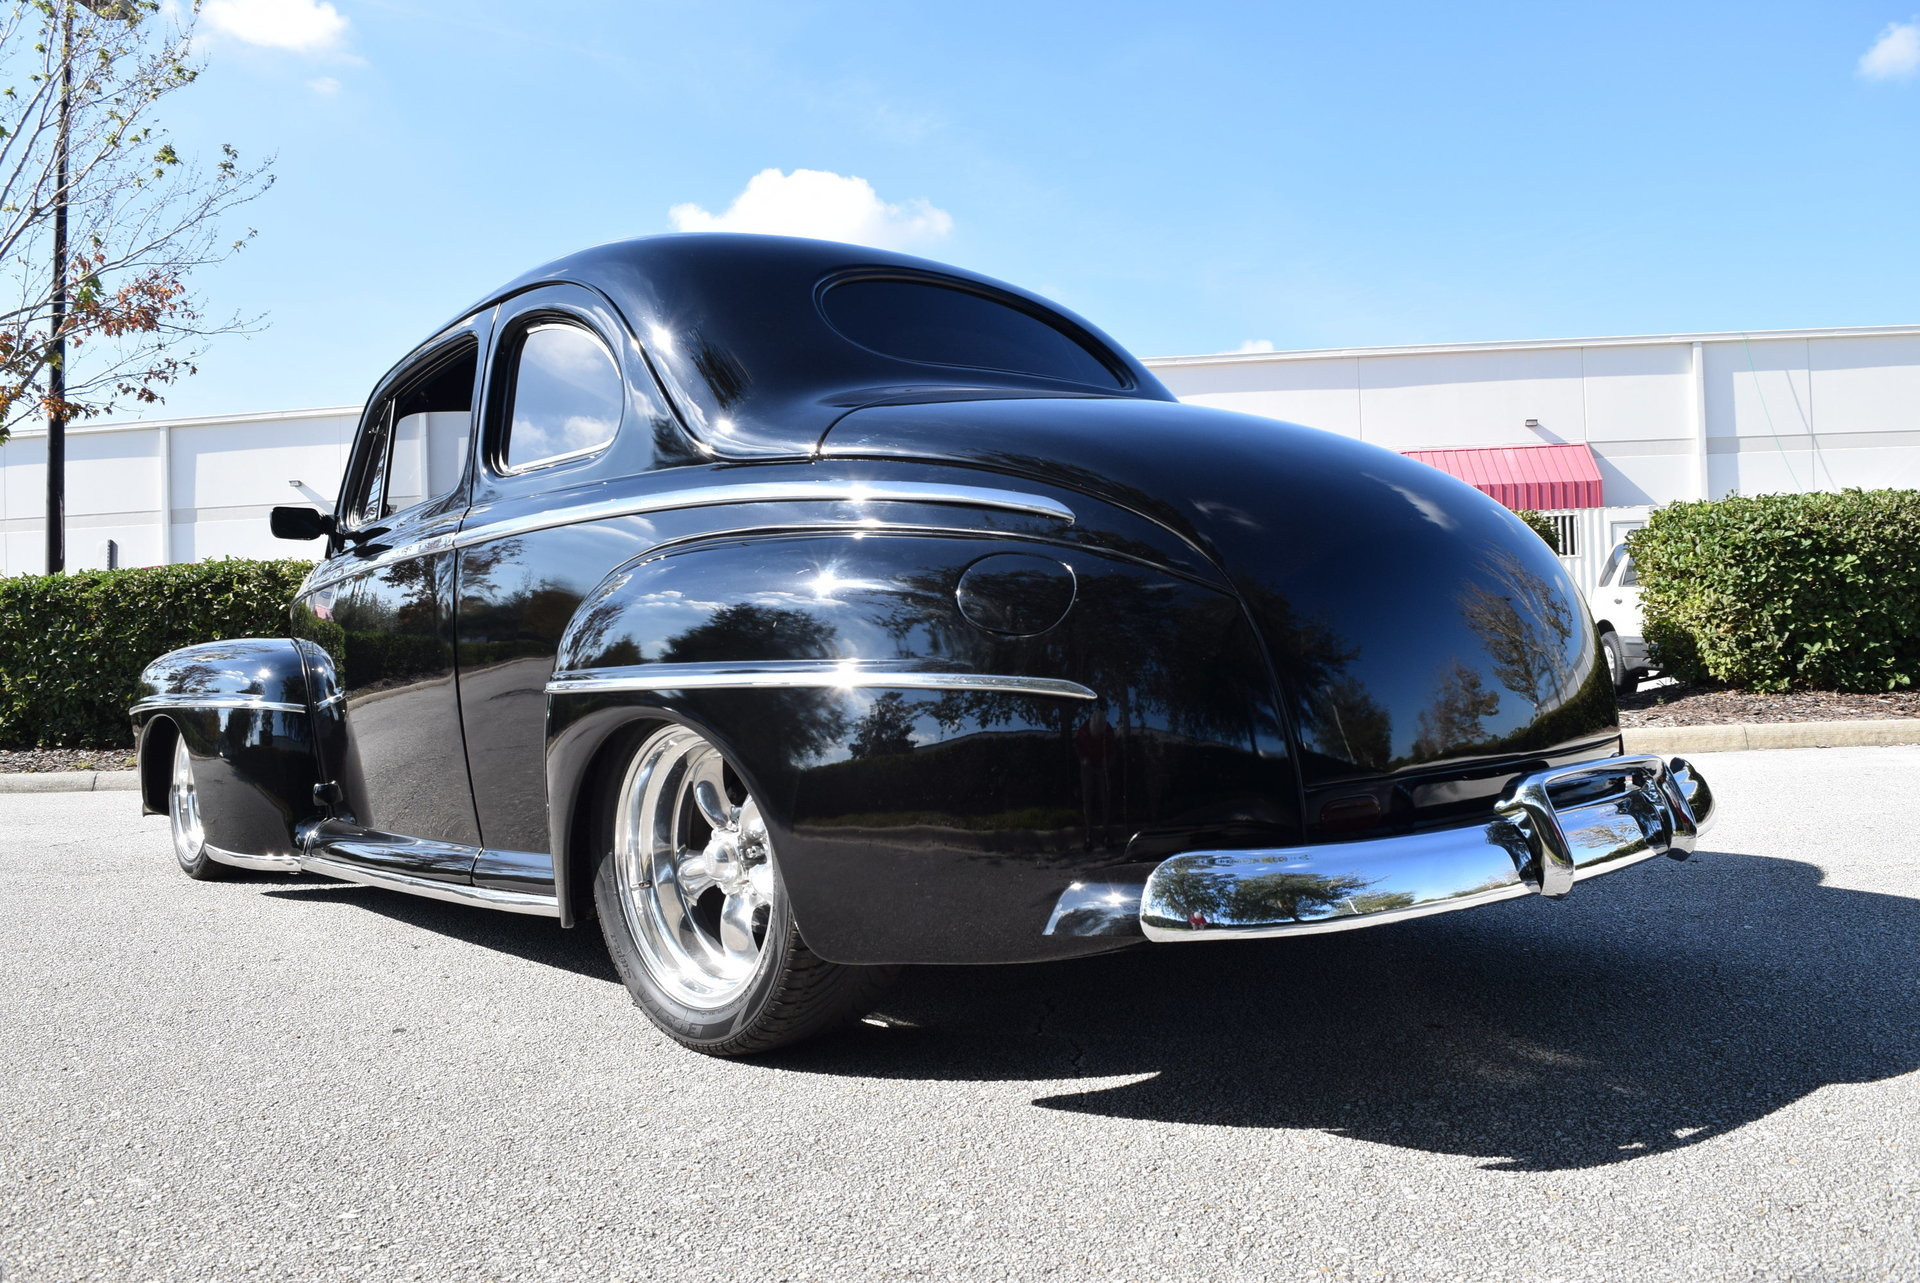 Ford Dealership Orlando >> 1947 Ford Club Coupe for sale #80479 | MCG